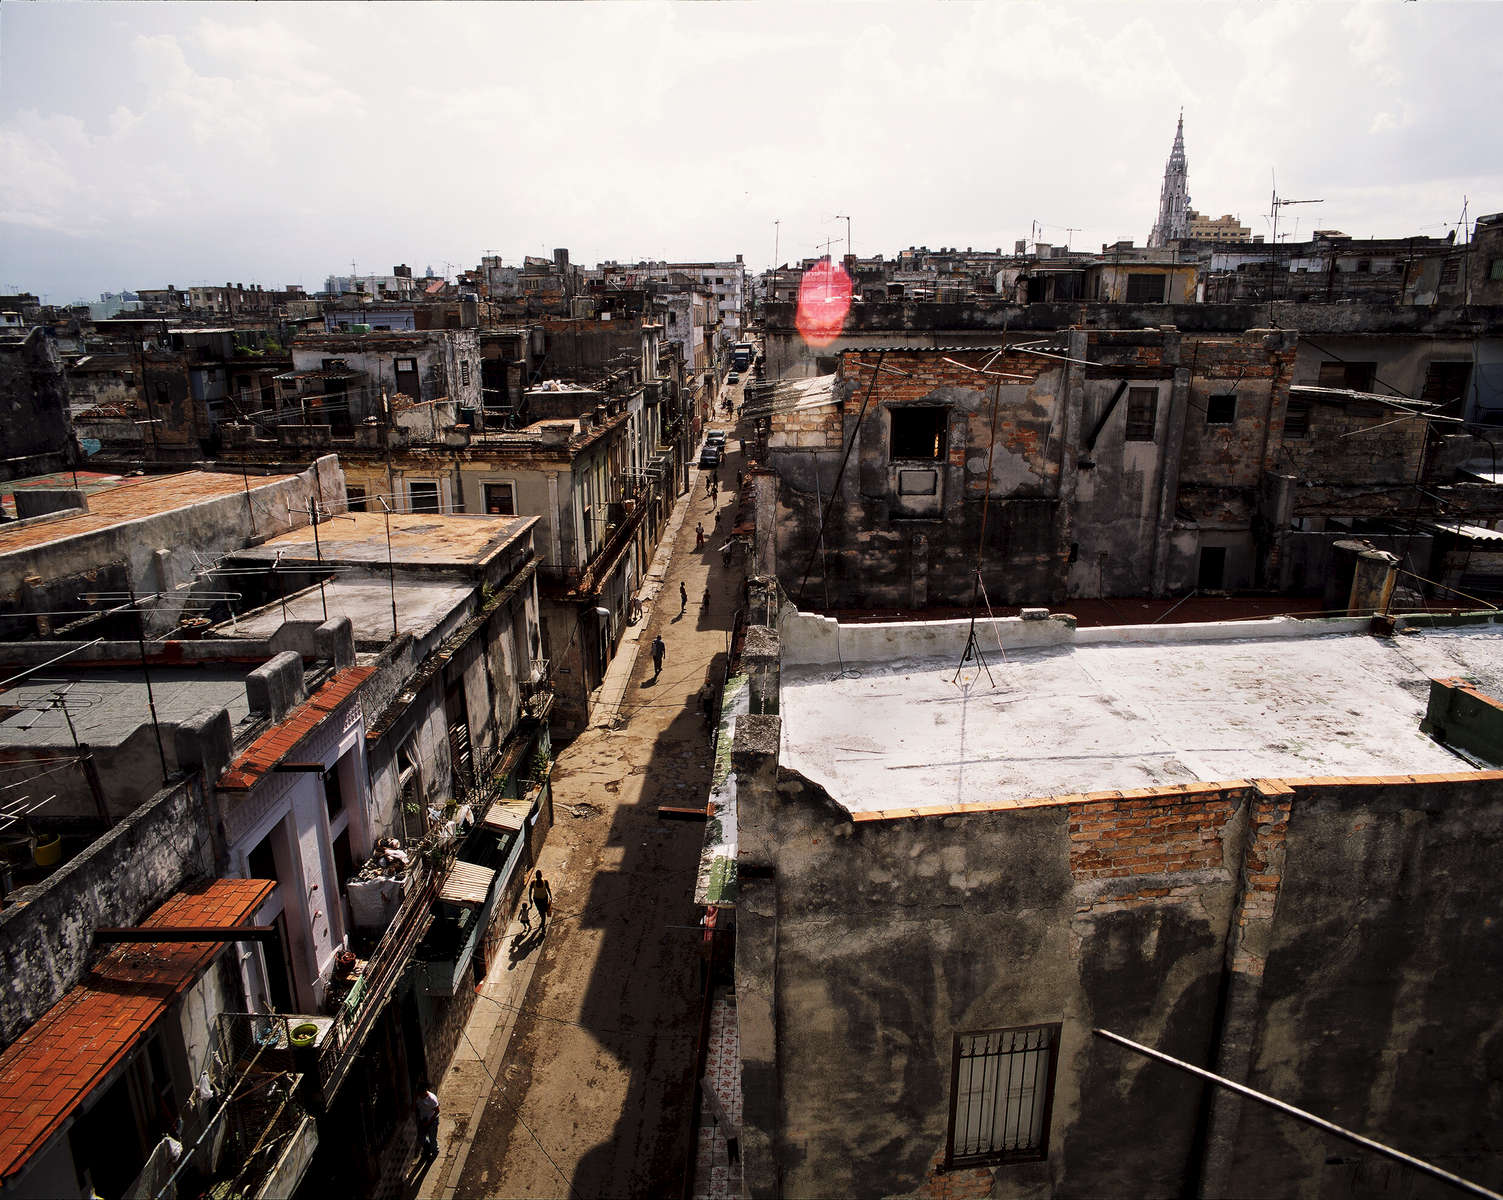 The sun sets over the rooftops of Barrio Chino (China Town) and Centro Habana. Havana, Cuba